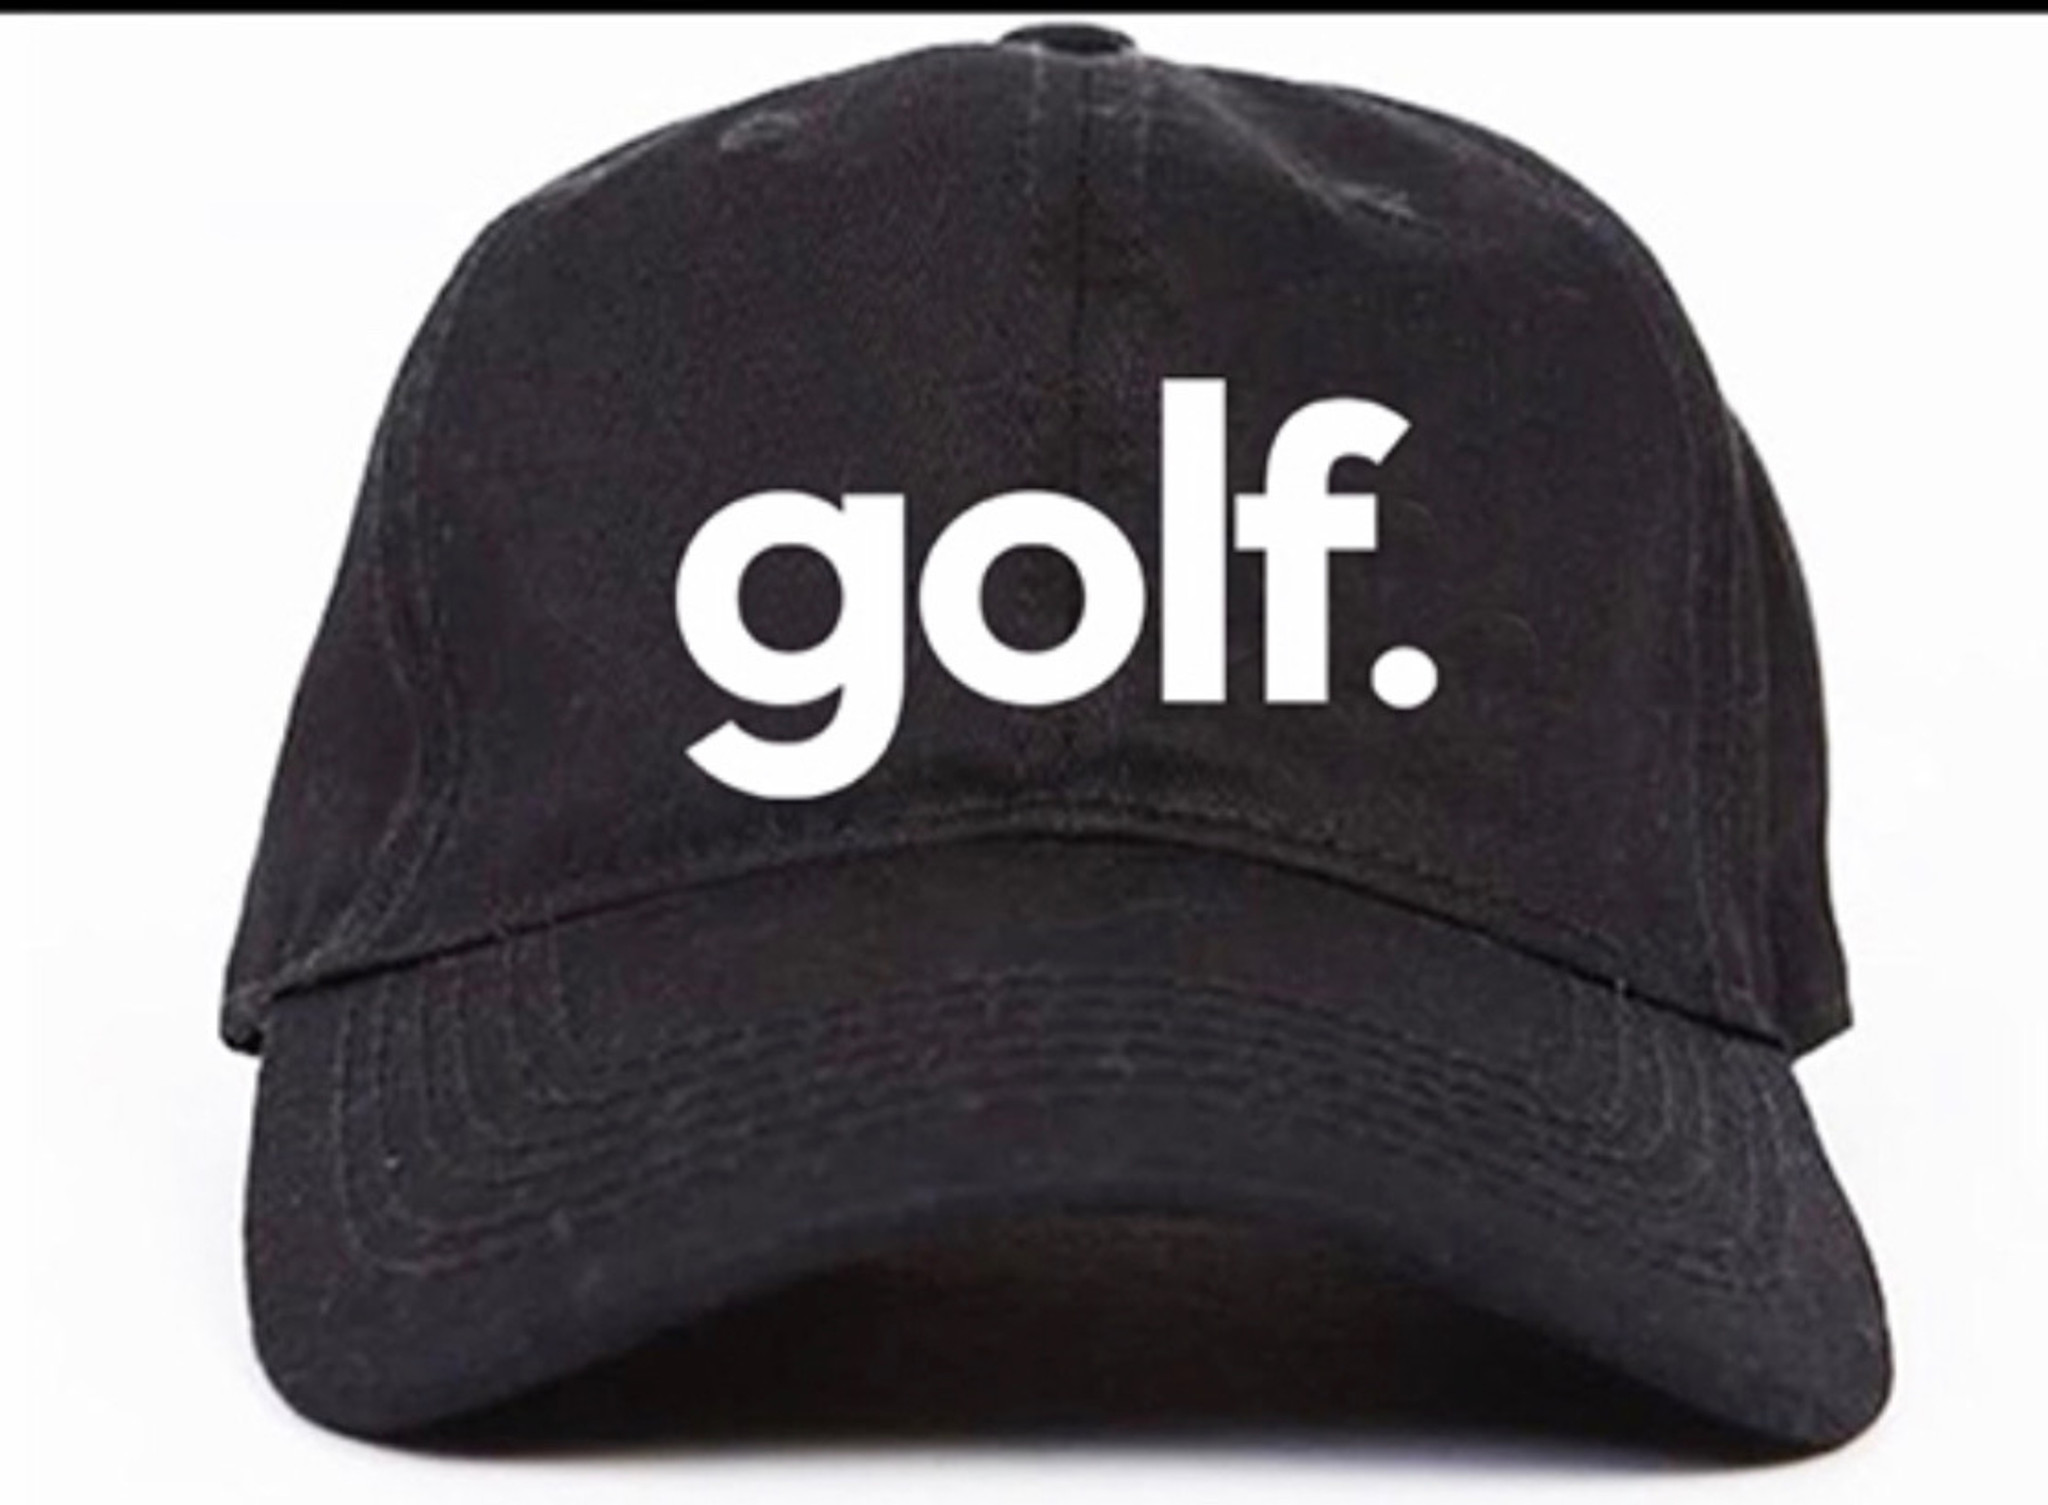 GOLF. EMBROIDERED DAD HAT (BLACK)